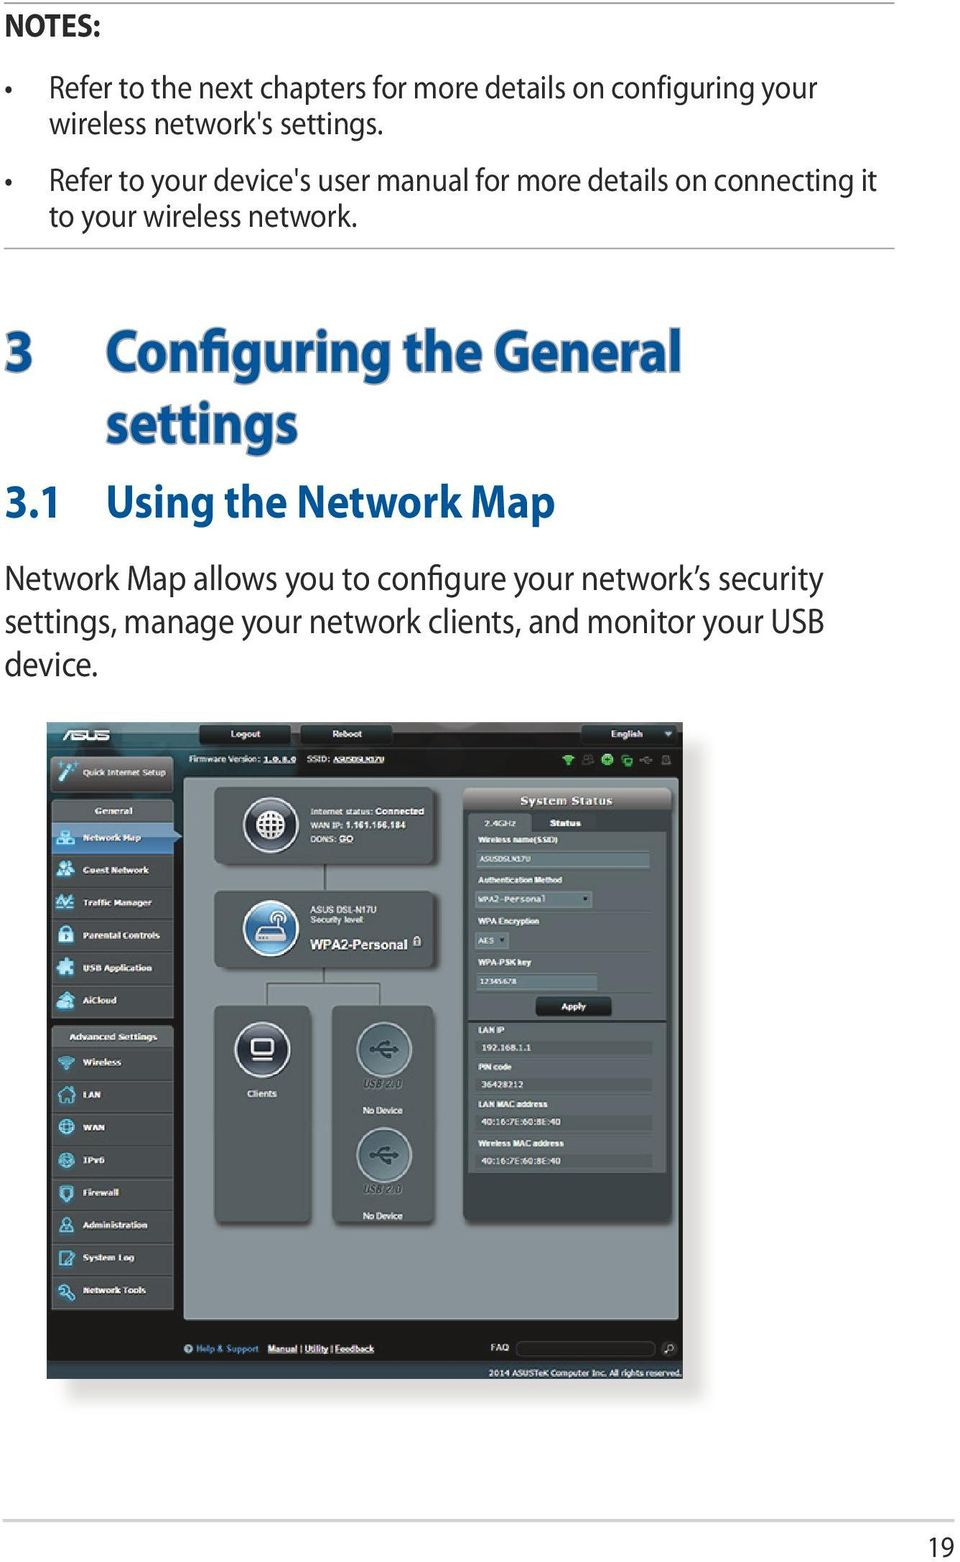 Refer to your device's user manual for more details on connecting it to your wireless network.